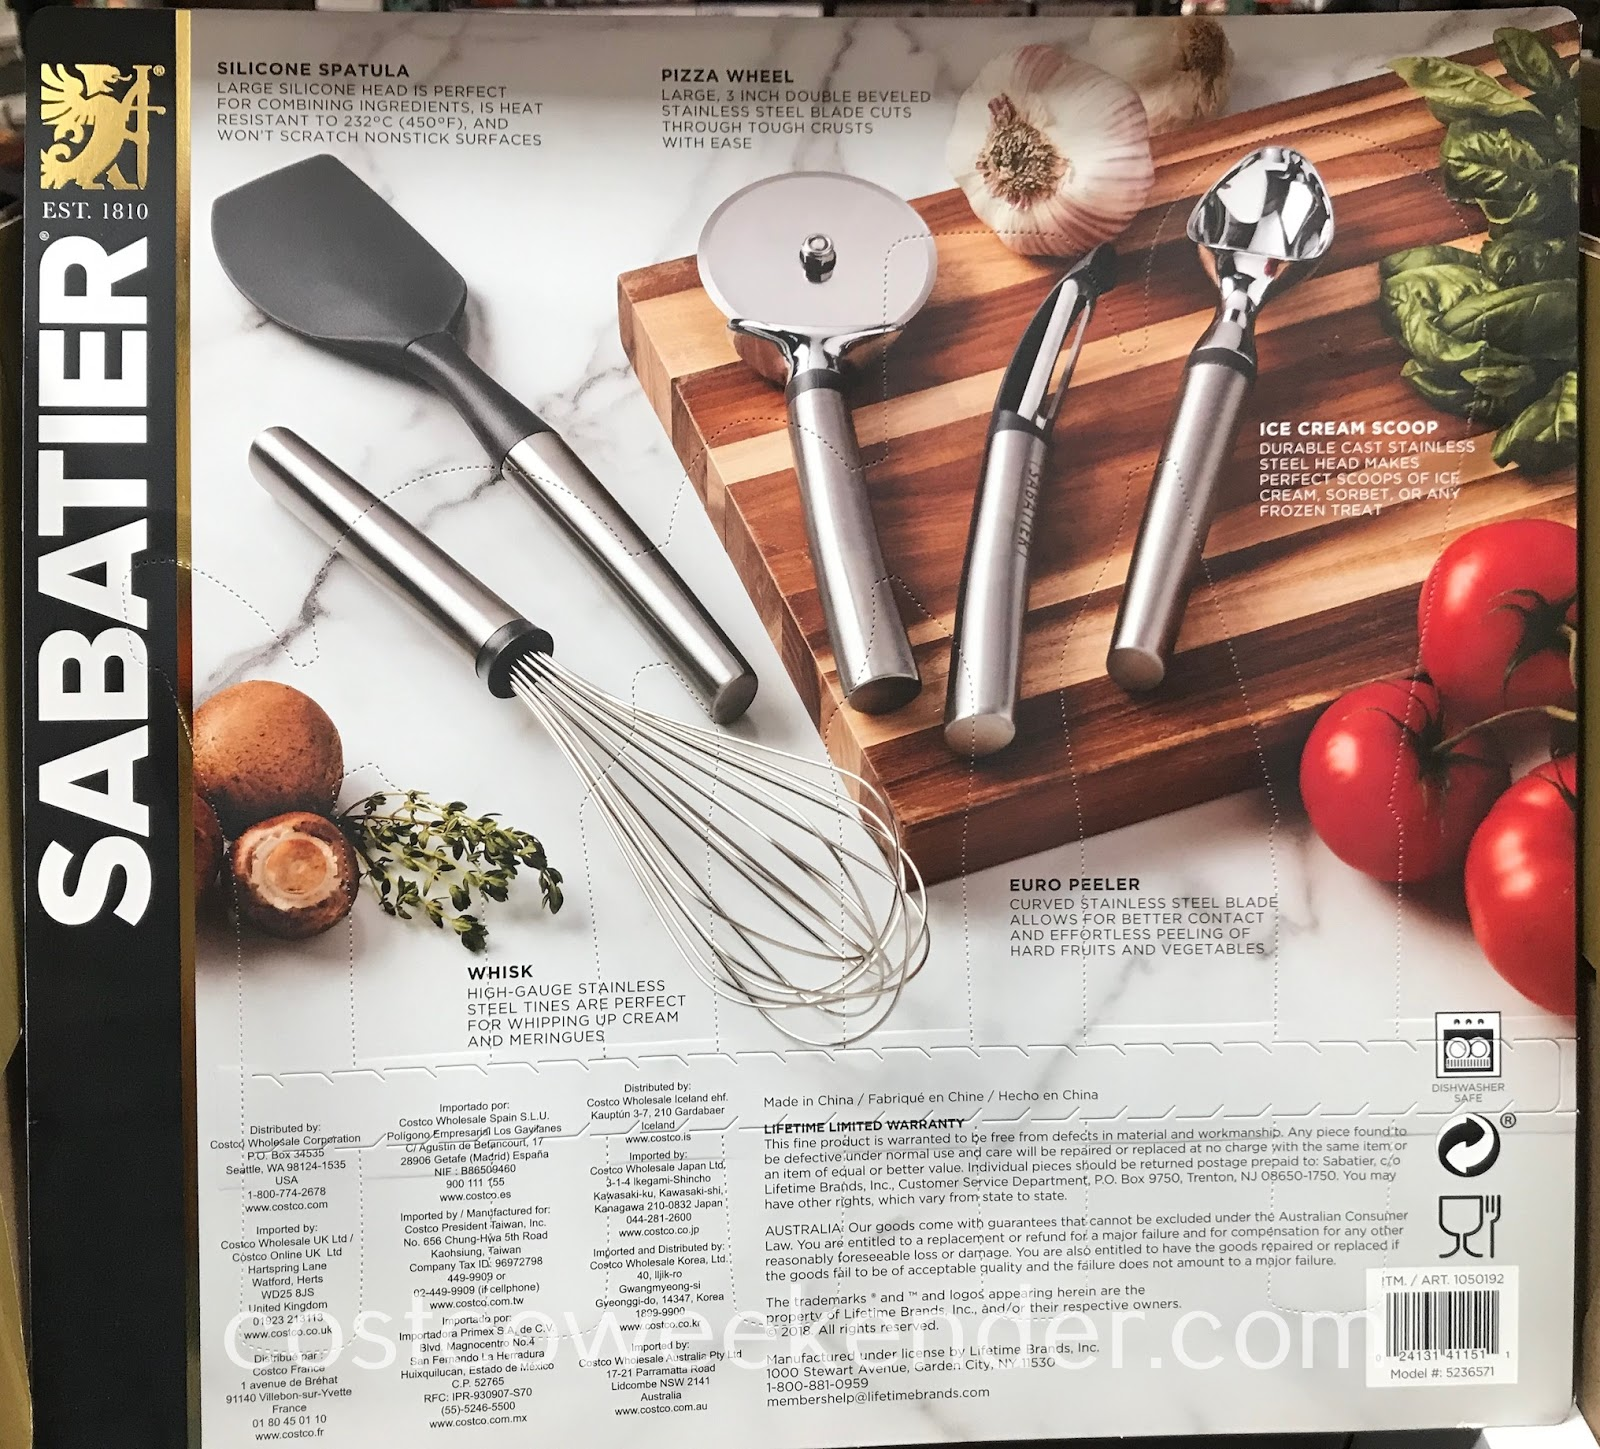 Costco 1050192 - Every kitchen will need the tools found in the Sabatier 5-piece Stainless Steel Gadget Set